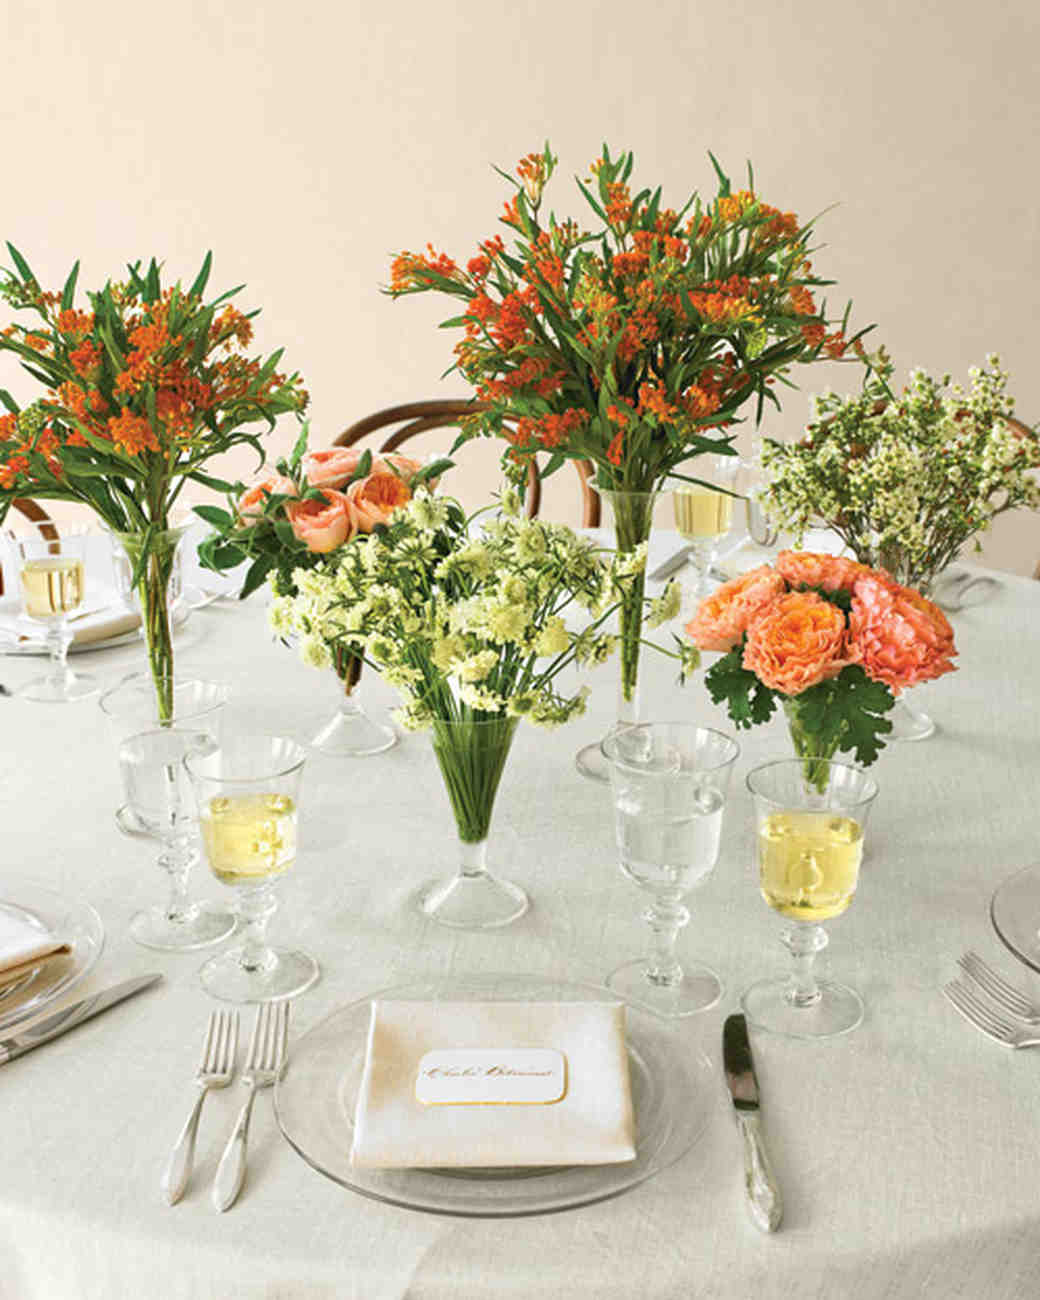 Simple Wedding Centerpieces Ideas: 39 Simple Wedding Centerpieces